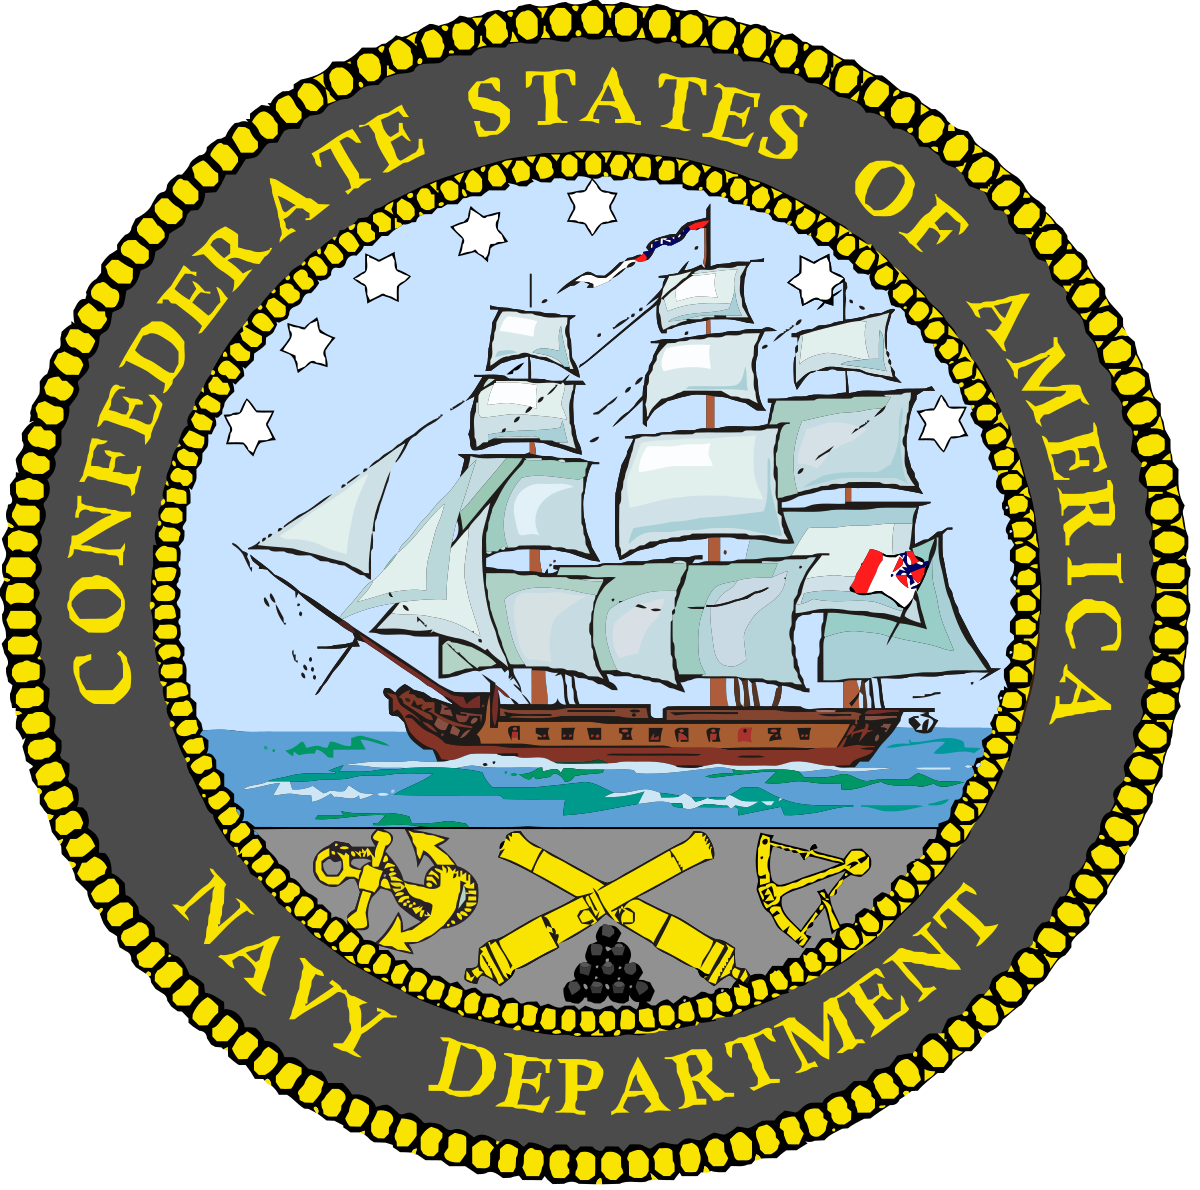 Confederate states navy wikipedia. Submarine clipart army boat